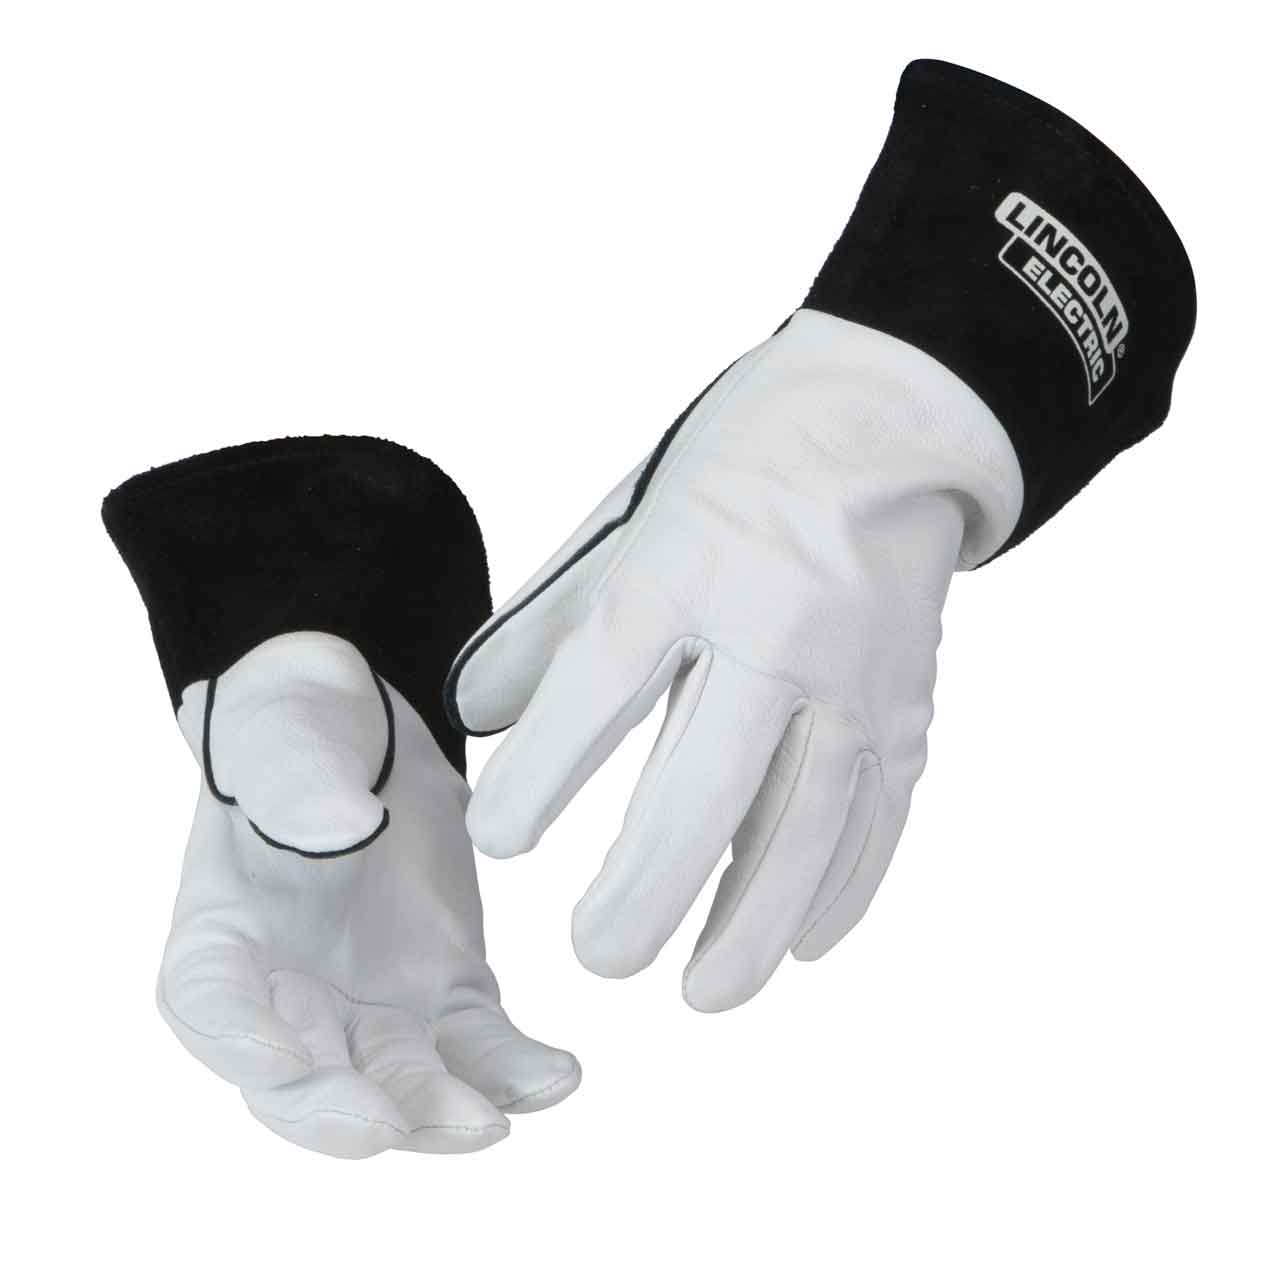 Lincoln Electric K2981 Goatskin Leather TIG Welding Gloves, Medium by Lincoln Electric